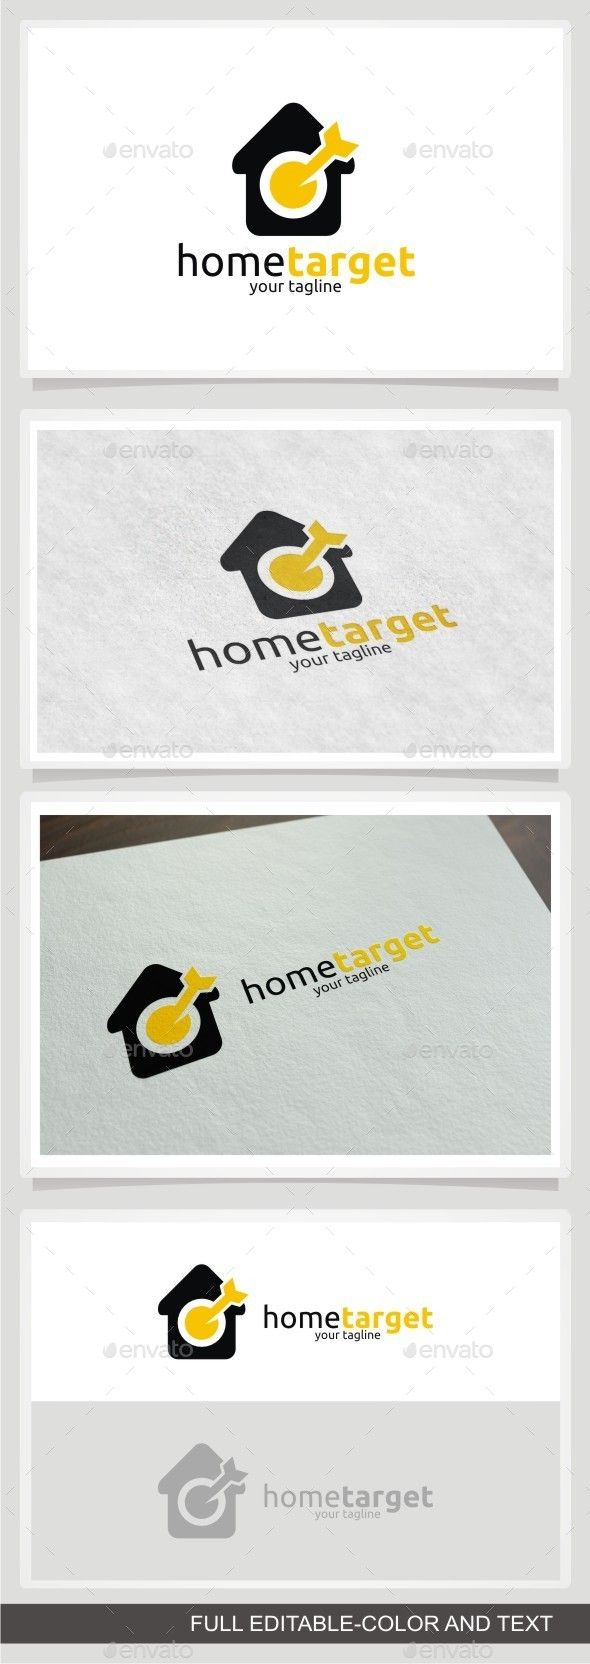 Home Target Logo by sosaenol Easy to edit to your own company name with vector for highly resizable and printing. Suitable for industry like Real Estate and Co